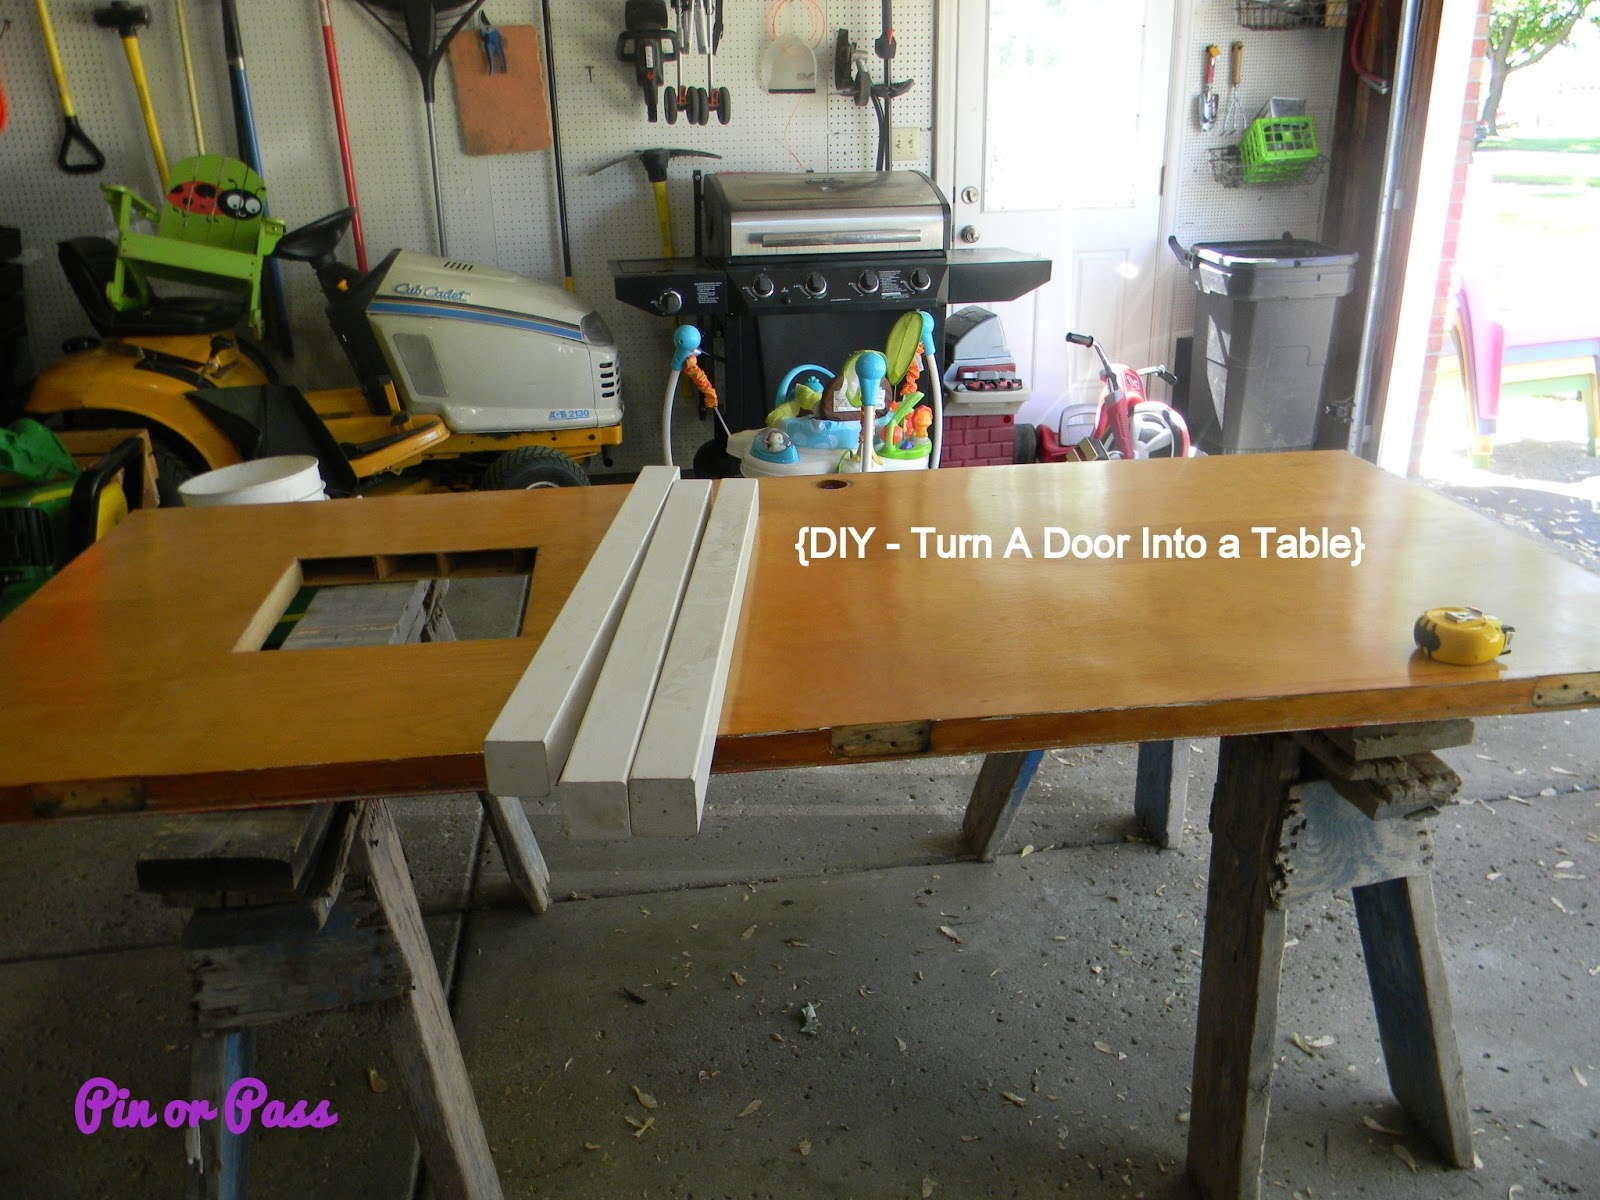 Pin or pass diy picnic table and updated plastic chairs for How to turn an old door into a table